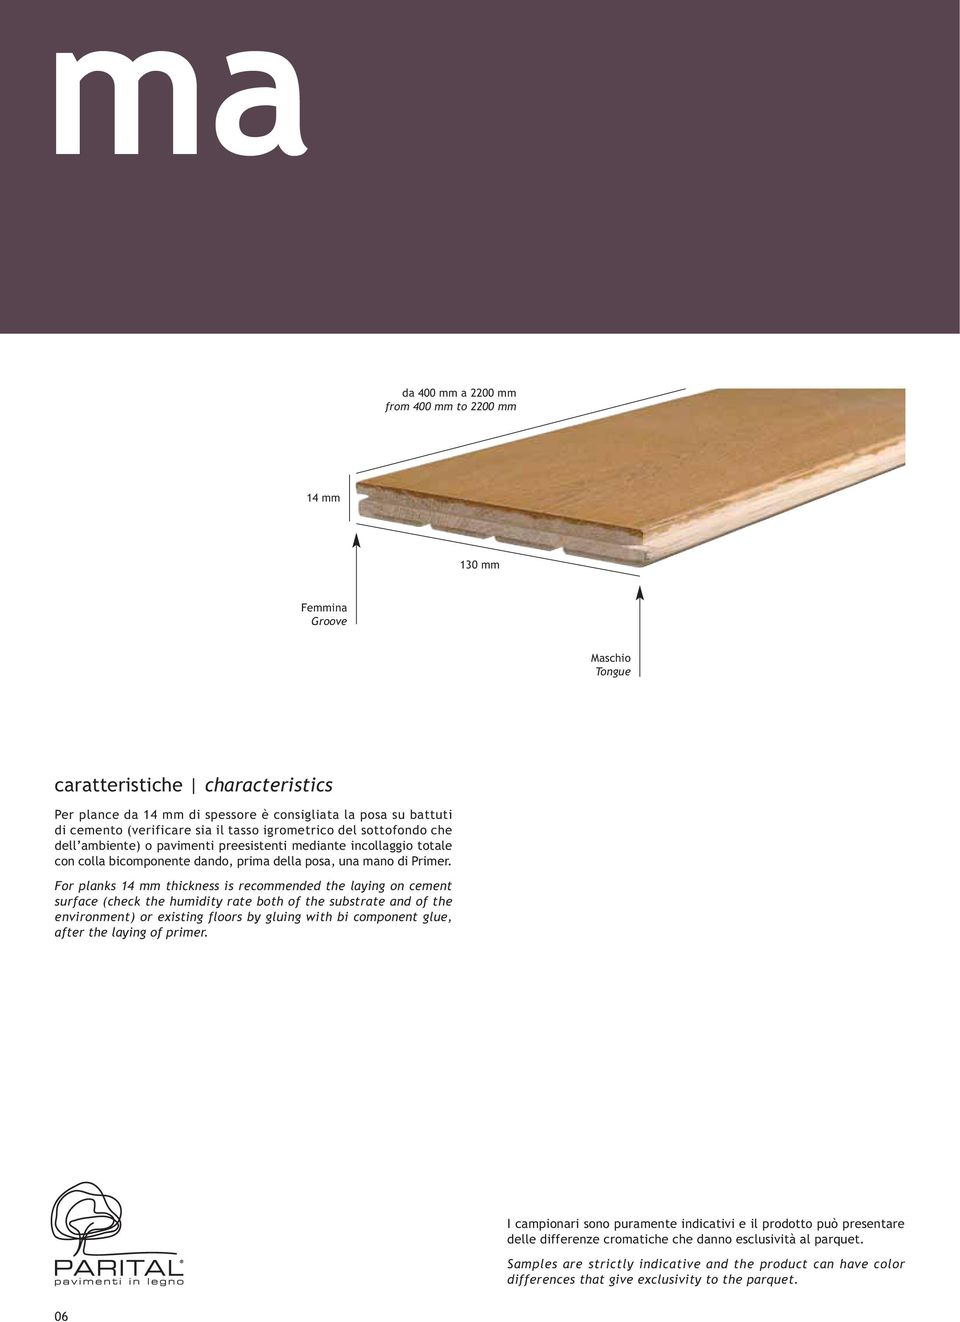 For planks 14 mm thickness is recommended the laying on cement surface (check the humidity rate both of the substrate and of the environment) or existing floors by gluing with bi component glue,